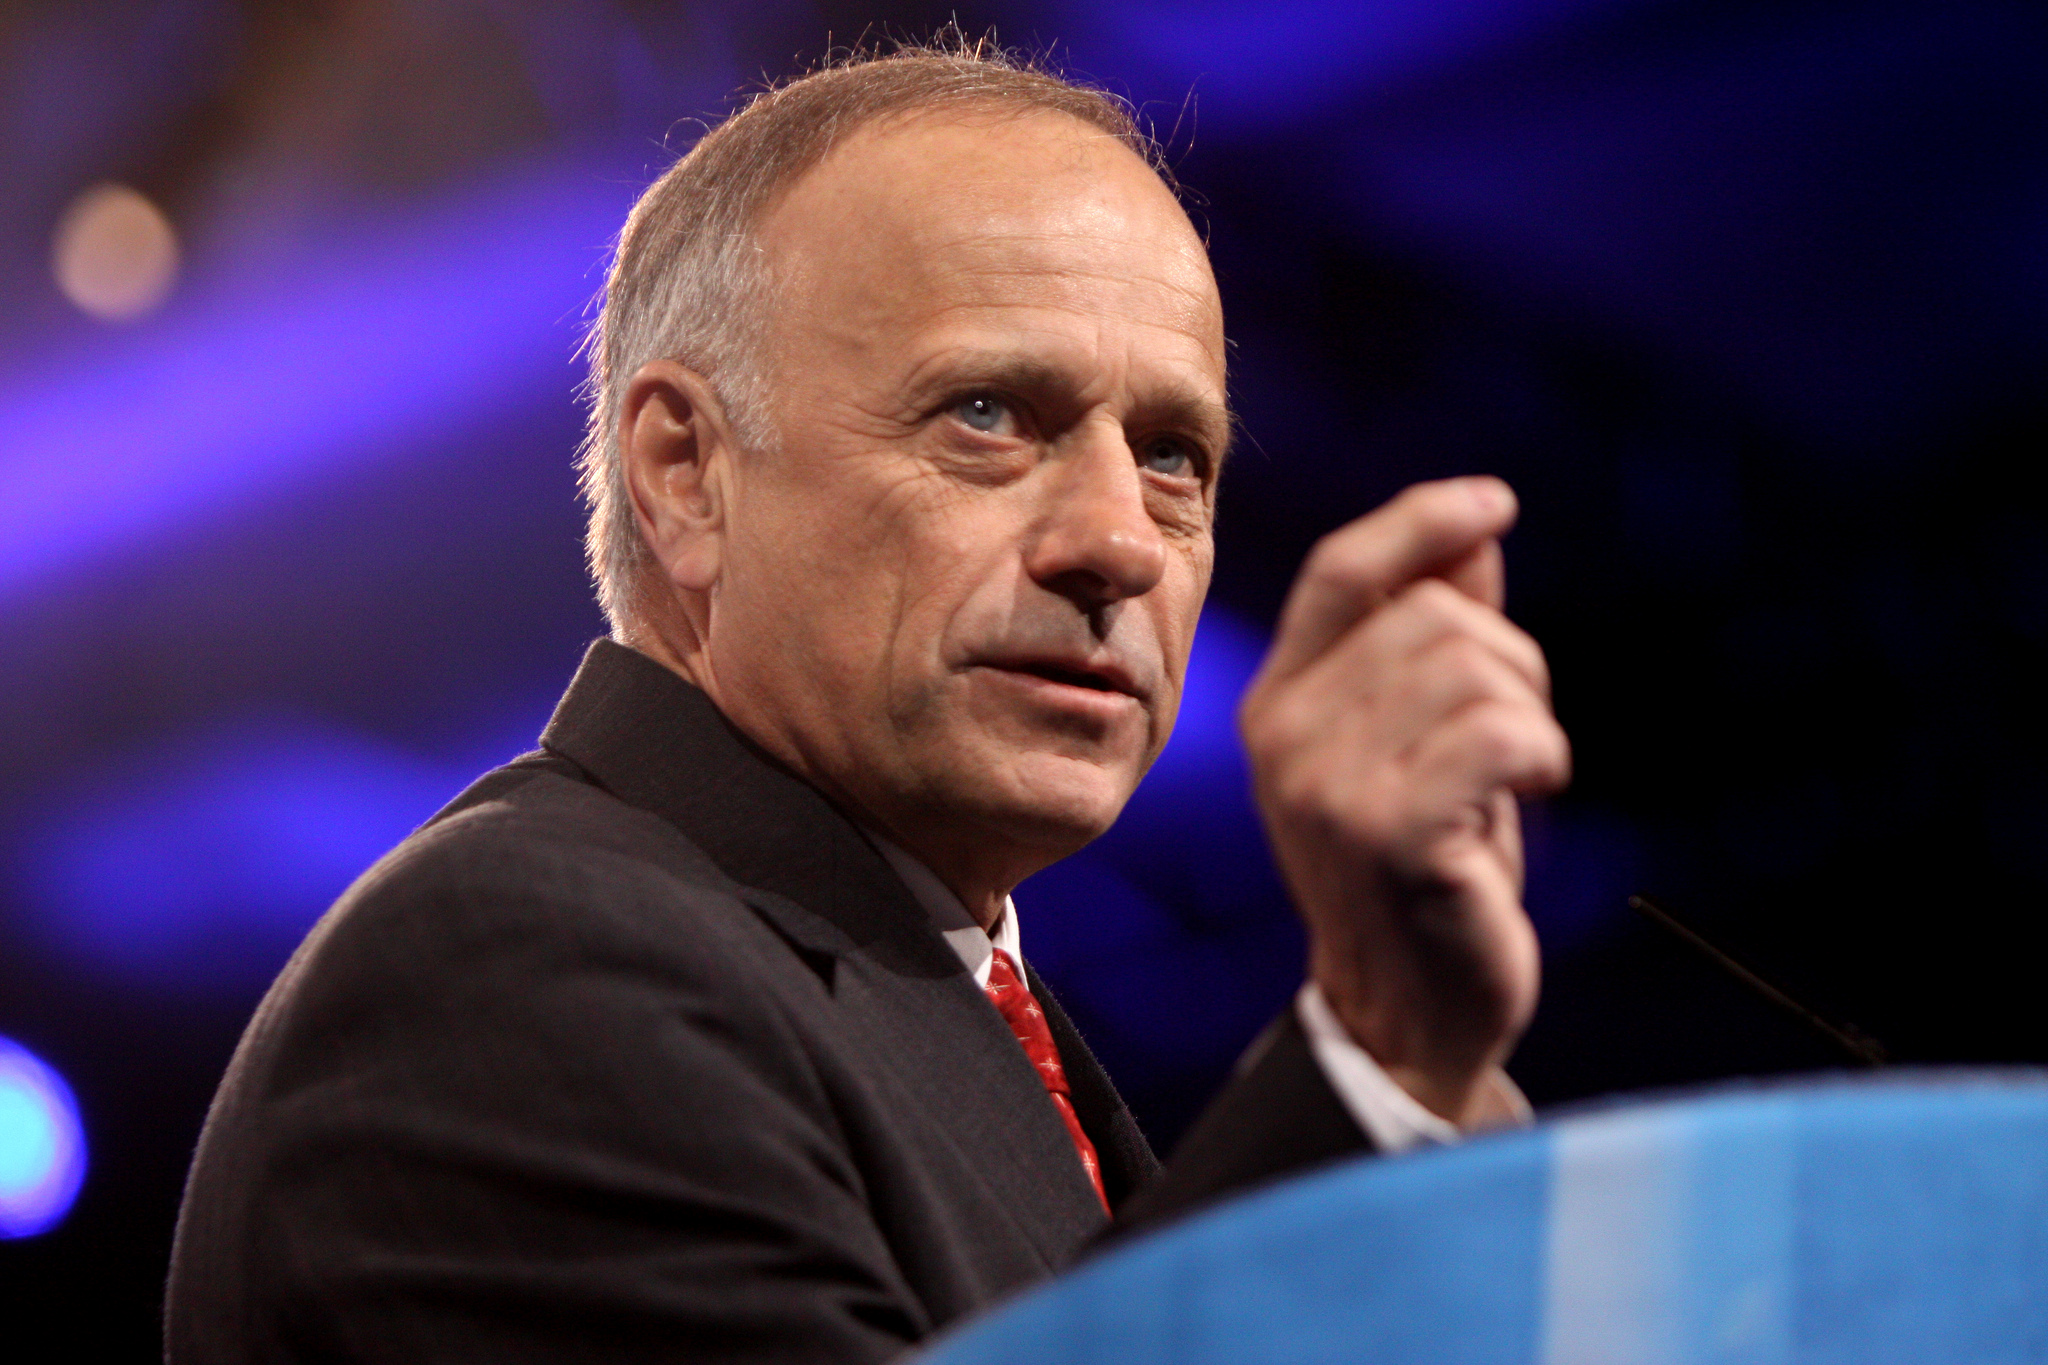 Steve King's Committee Continues Attack on President's Immigration Actions